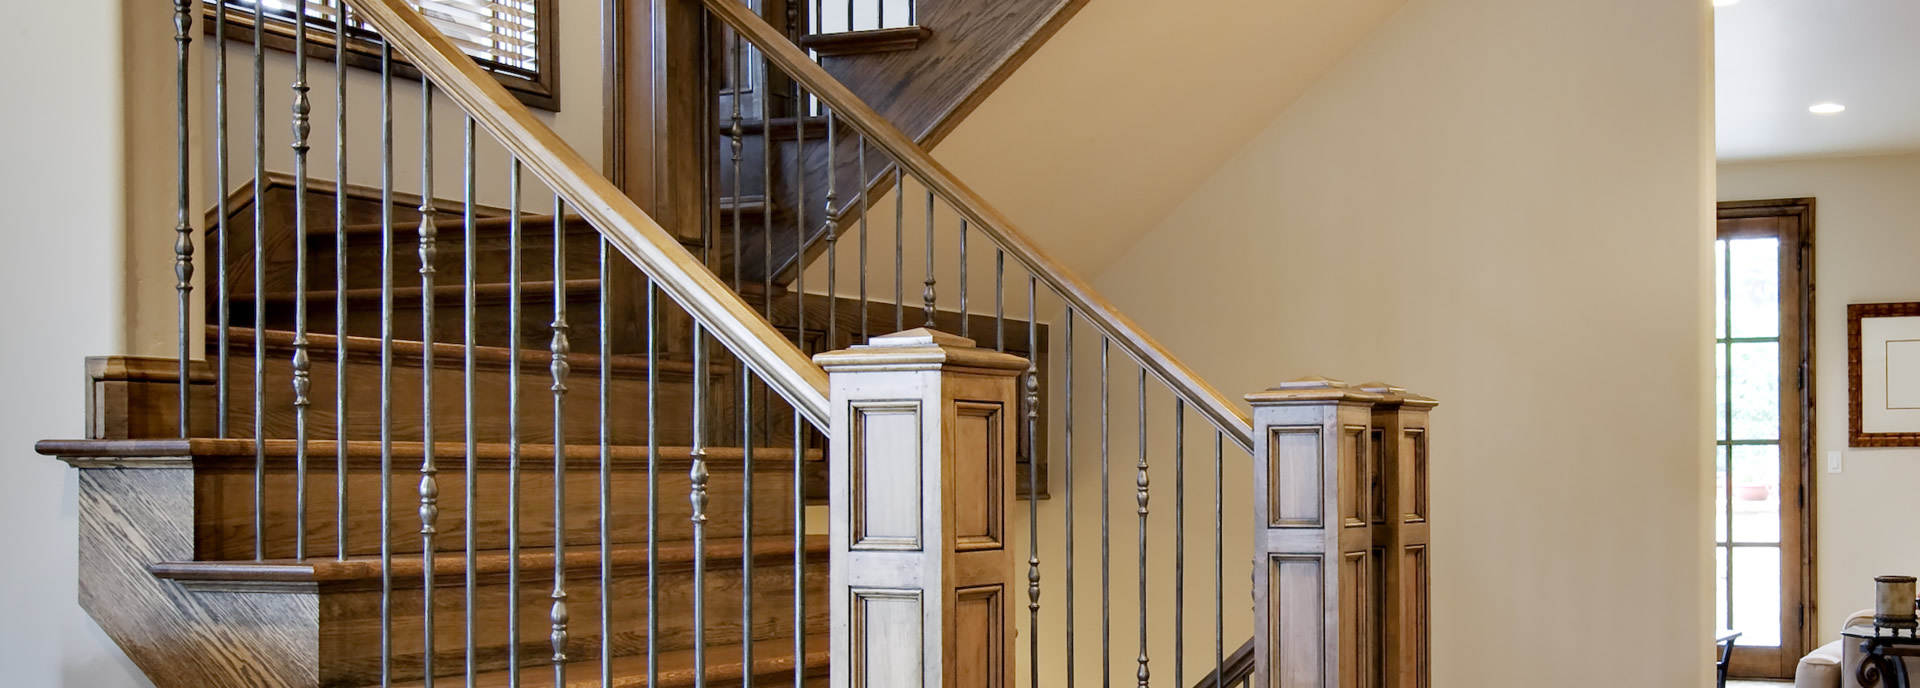 Custom Stairs: We Take Commercial Stairs to the Next Level, Part 1 Alpharetta, GA